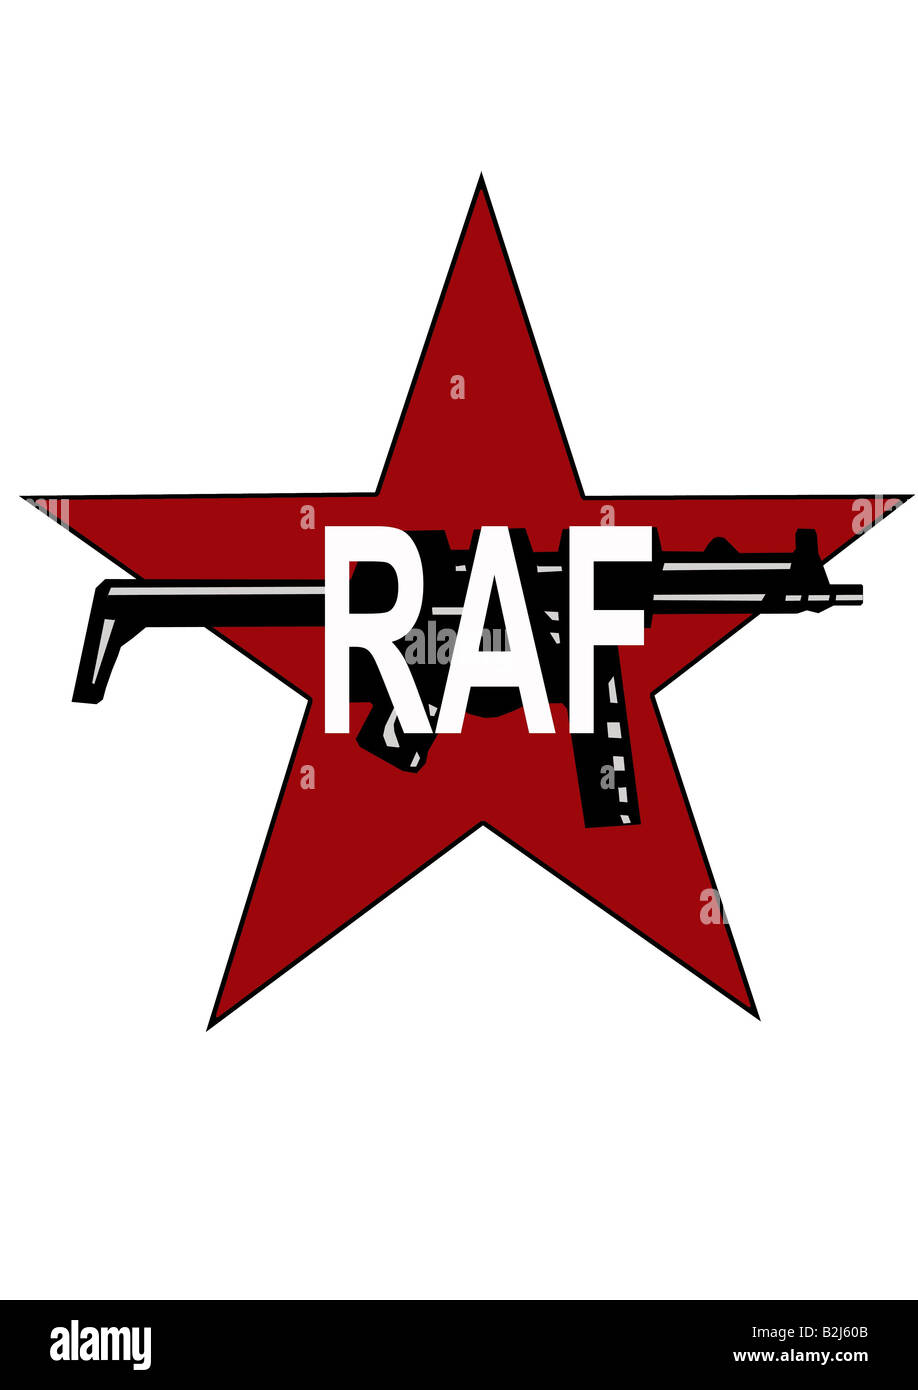 Terrorism symbol emplem red army fraction raf terror group terrorism symbol emplem red army fraction raf terror group supmachine gun supmachinegun mg heckler and koch mp5 germa biocorpaavc